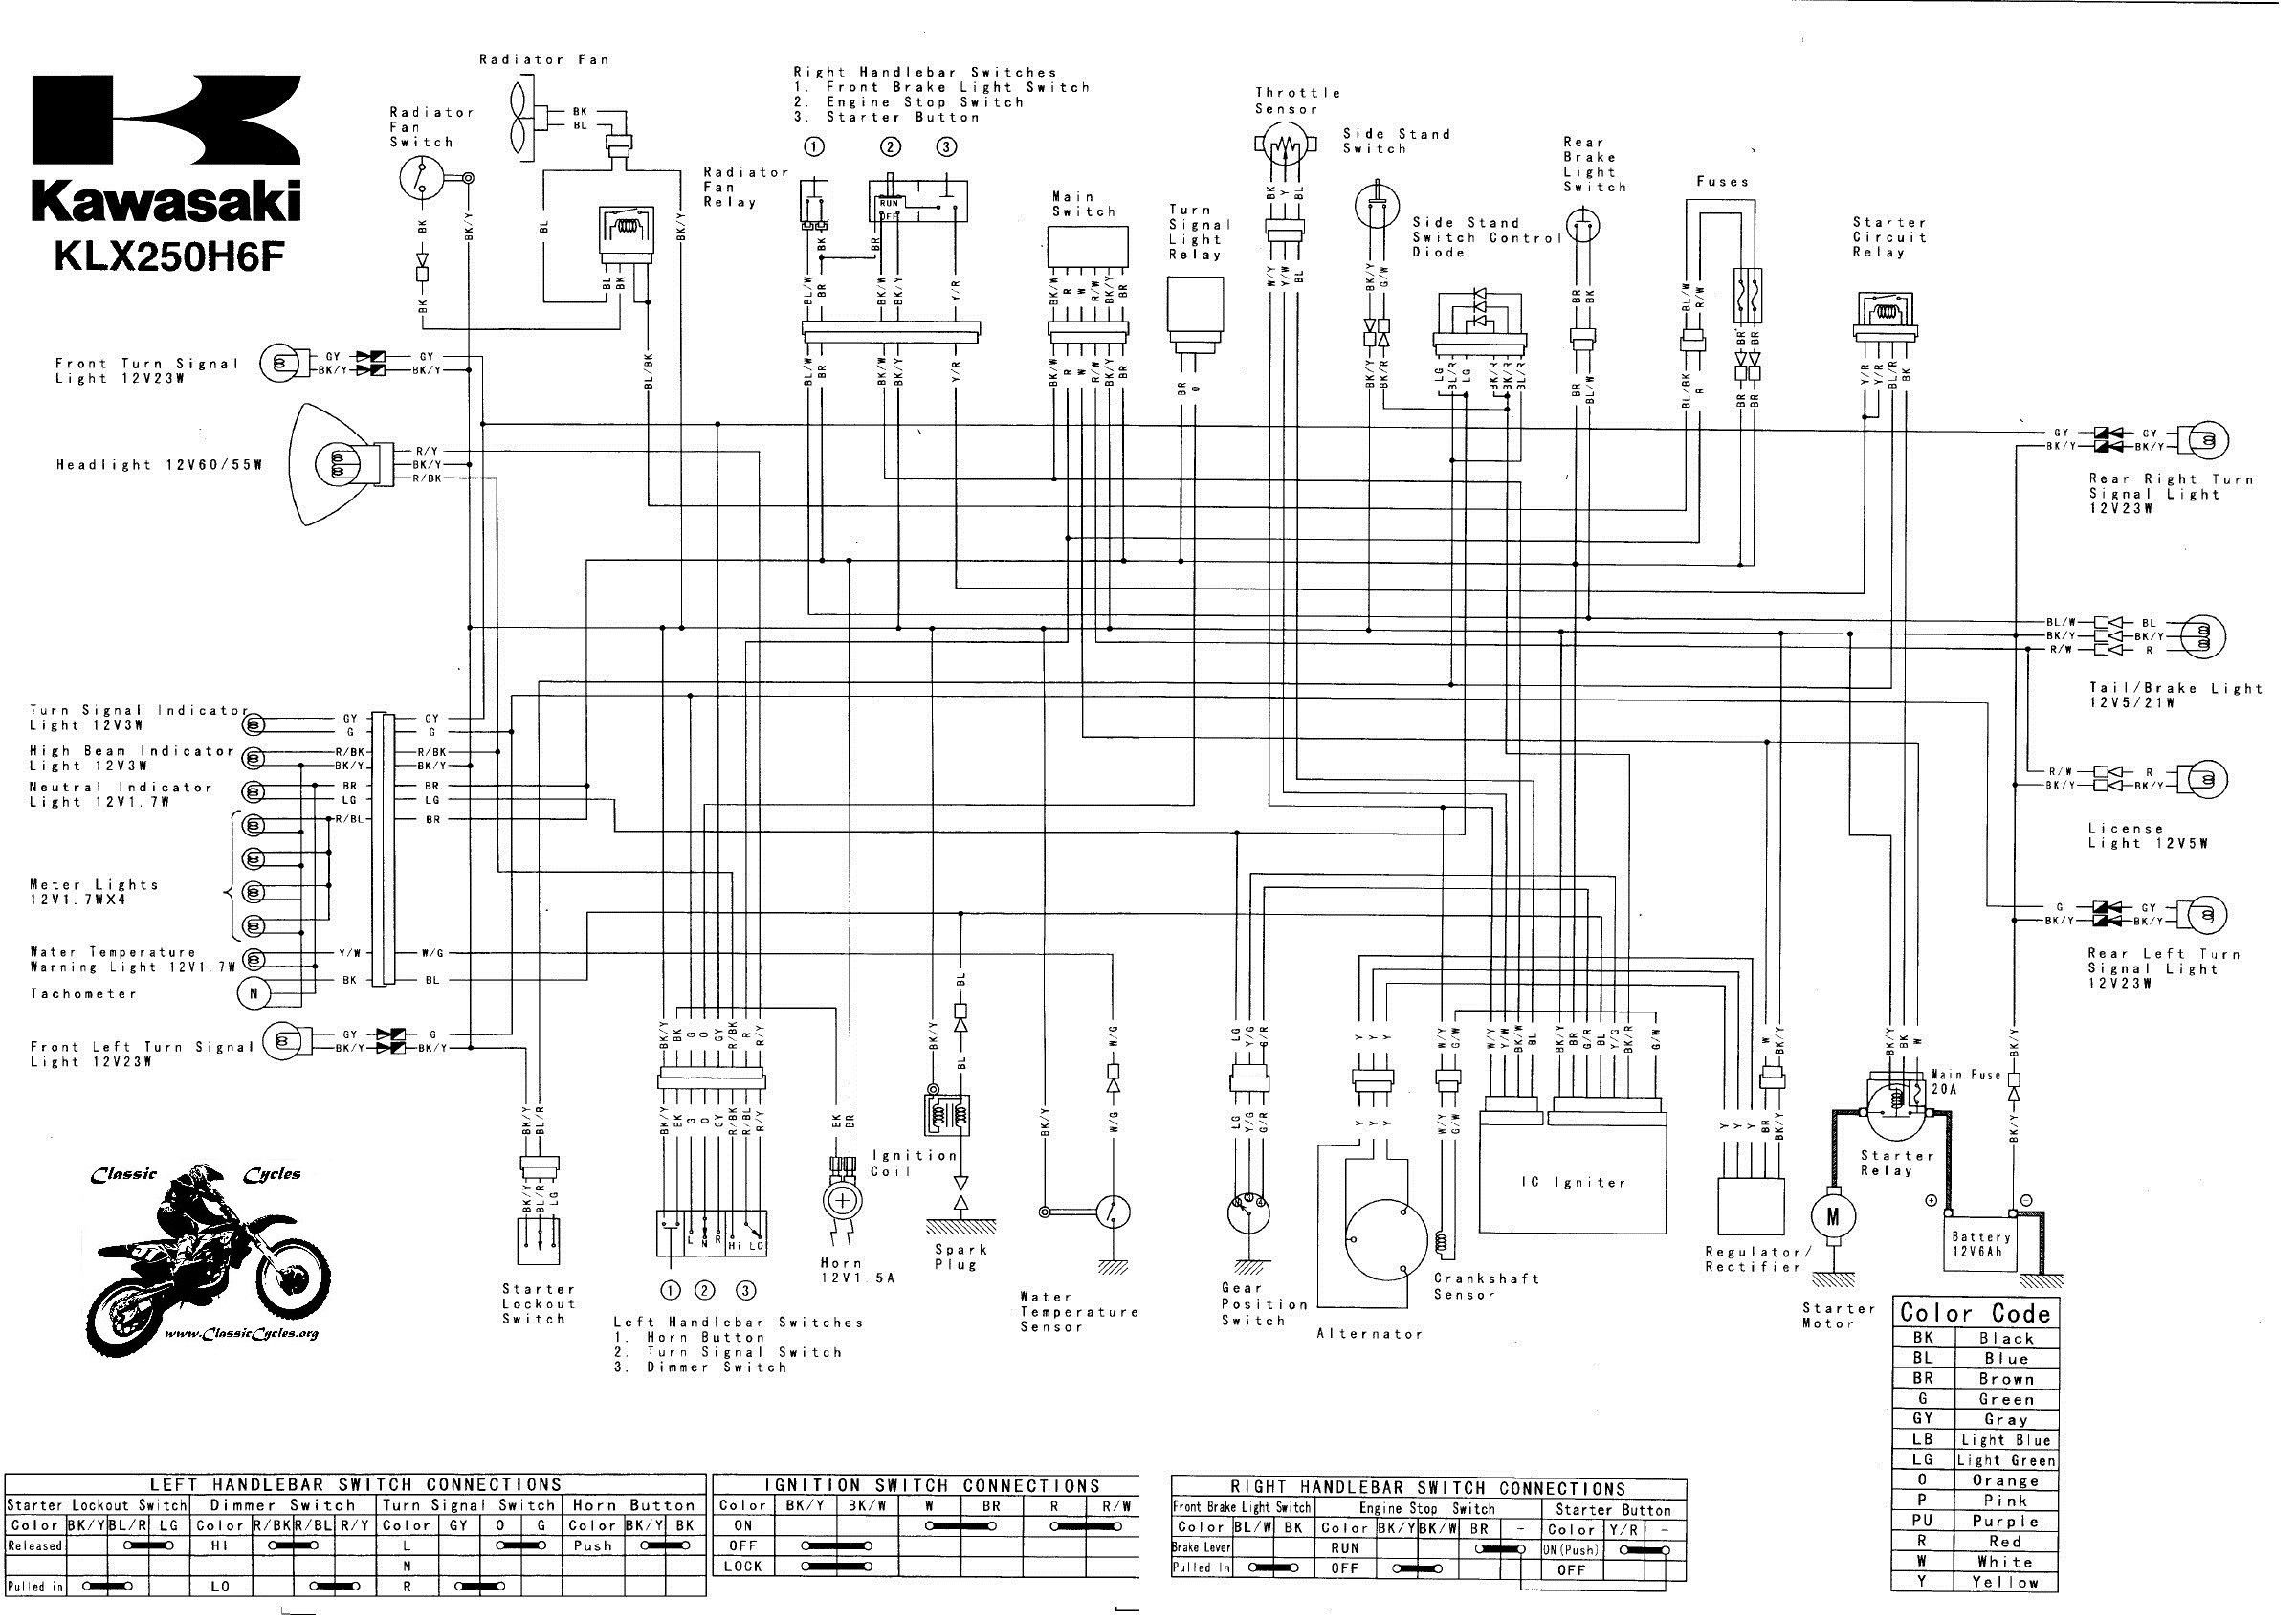 new electrical schematics training #diagram #wiringdiagram #diagramming  #diagramm #visuals #visualisation #graph… | kawasaki motorcycles, motorcycle  wiring, diagram  pinterest